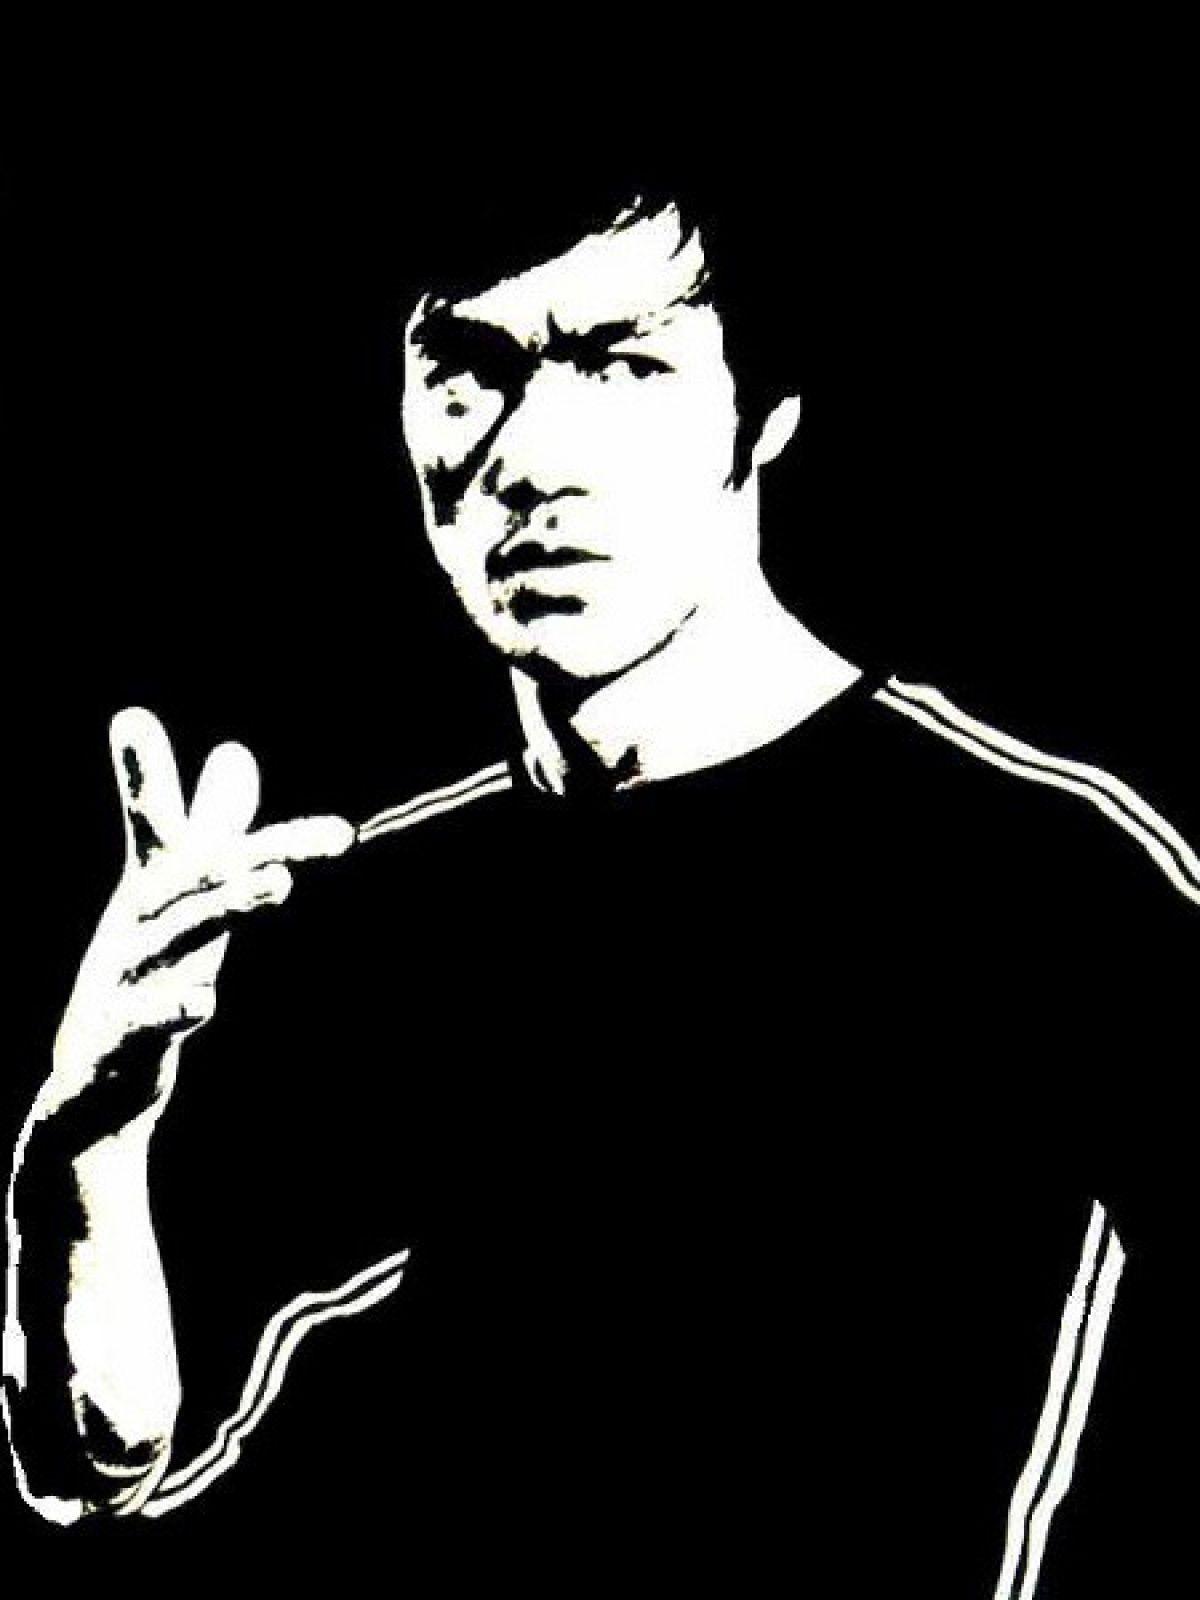 10 Latest Bruce Lee Wallpaper Android Full Hd 1920 1080 For Pc Background In 2020 Samsung Wallpaper Bruce Lee Android Wallpaper